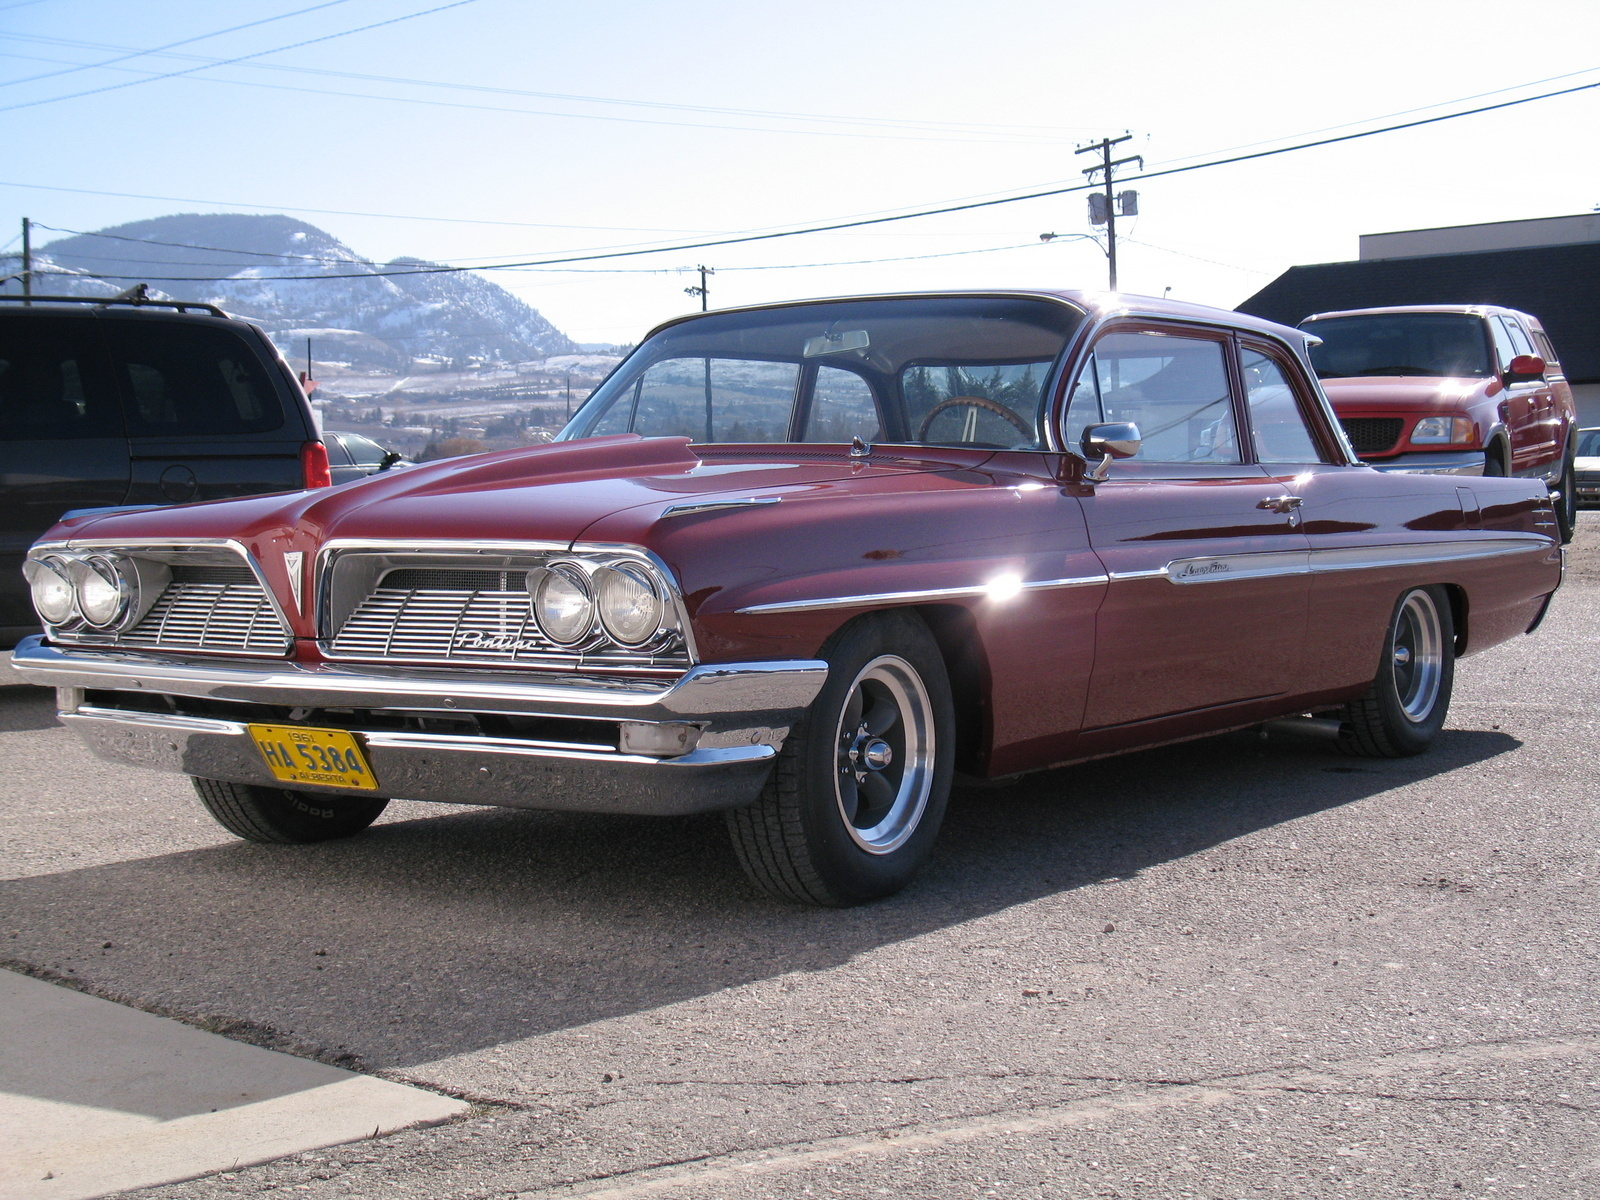 Pontiac Laurentian Questions   in need of info for my 1961 pontiac     I ordered a lot of parts for 1961 Biscayne I would try to find a donor car  your parts  there are still quite a few 4 doors out there in good shape